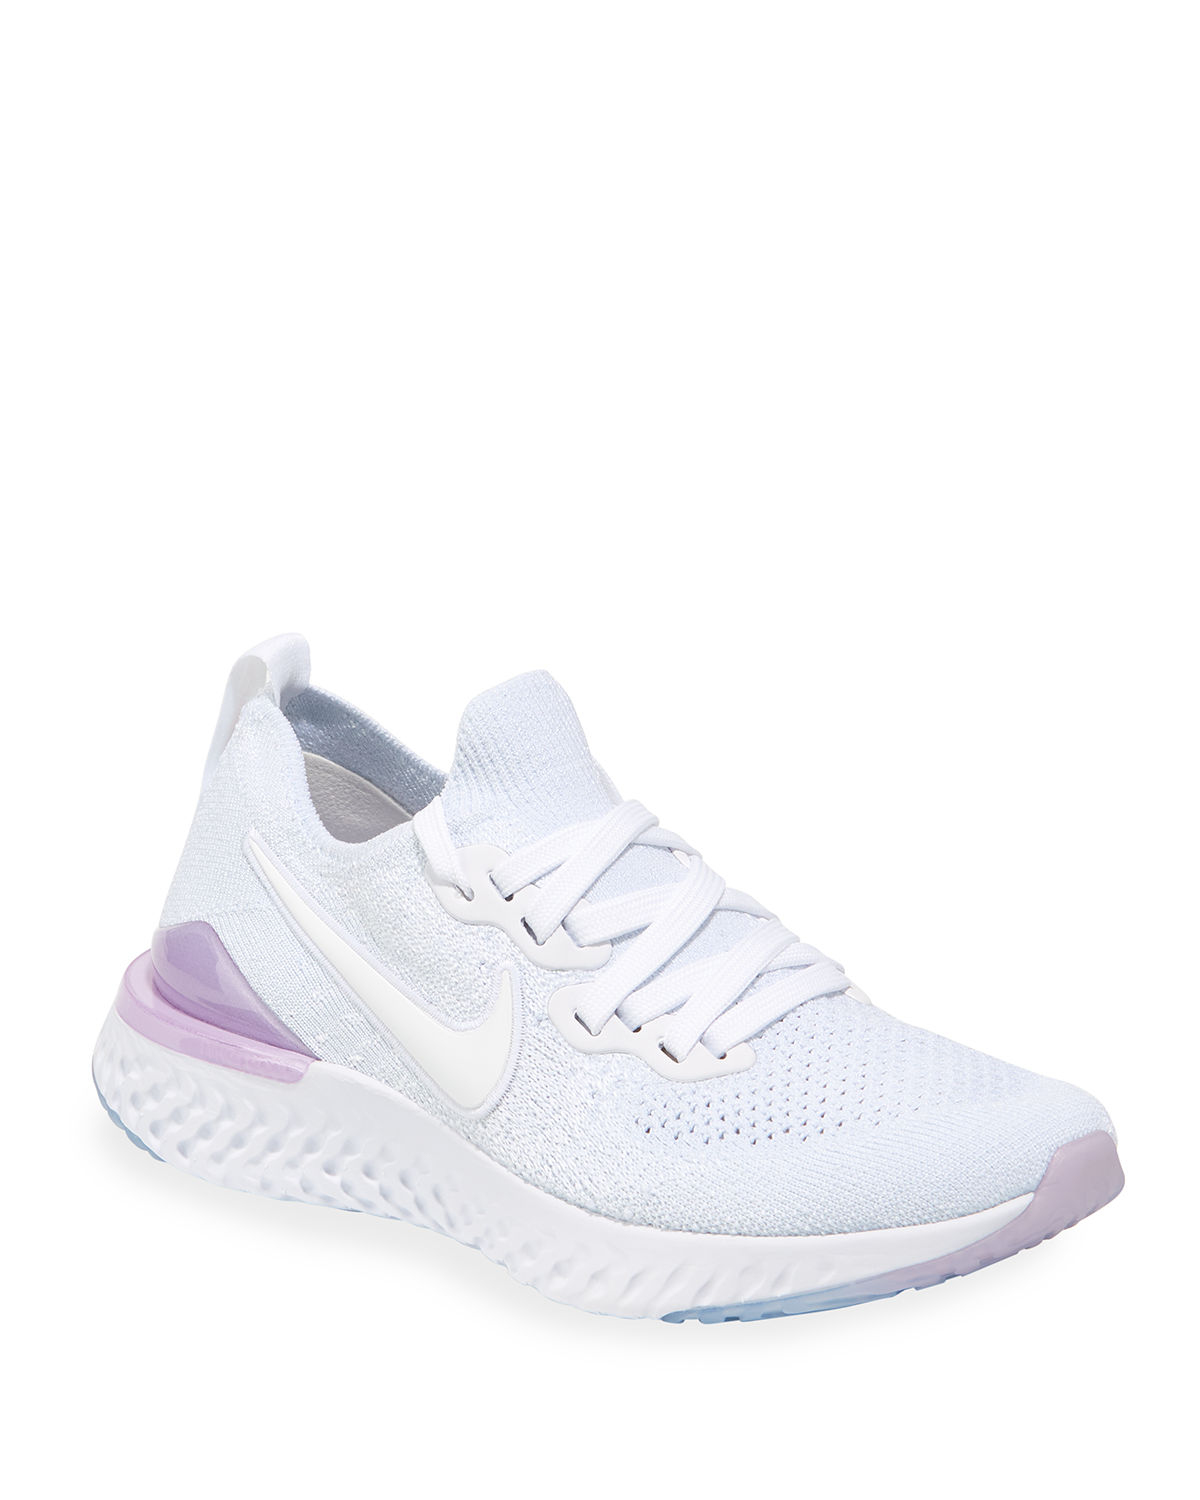 b0402a7a1064 Nike Epic React Flyknit 2 Running Sneakers